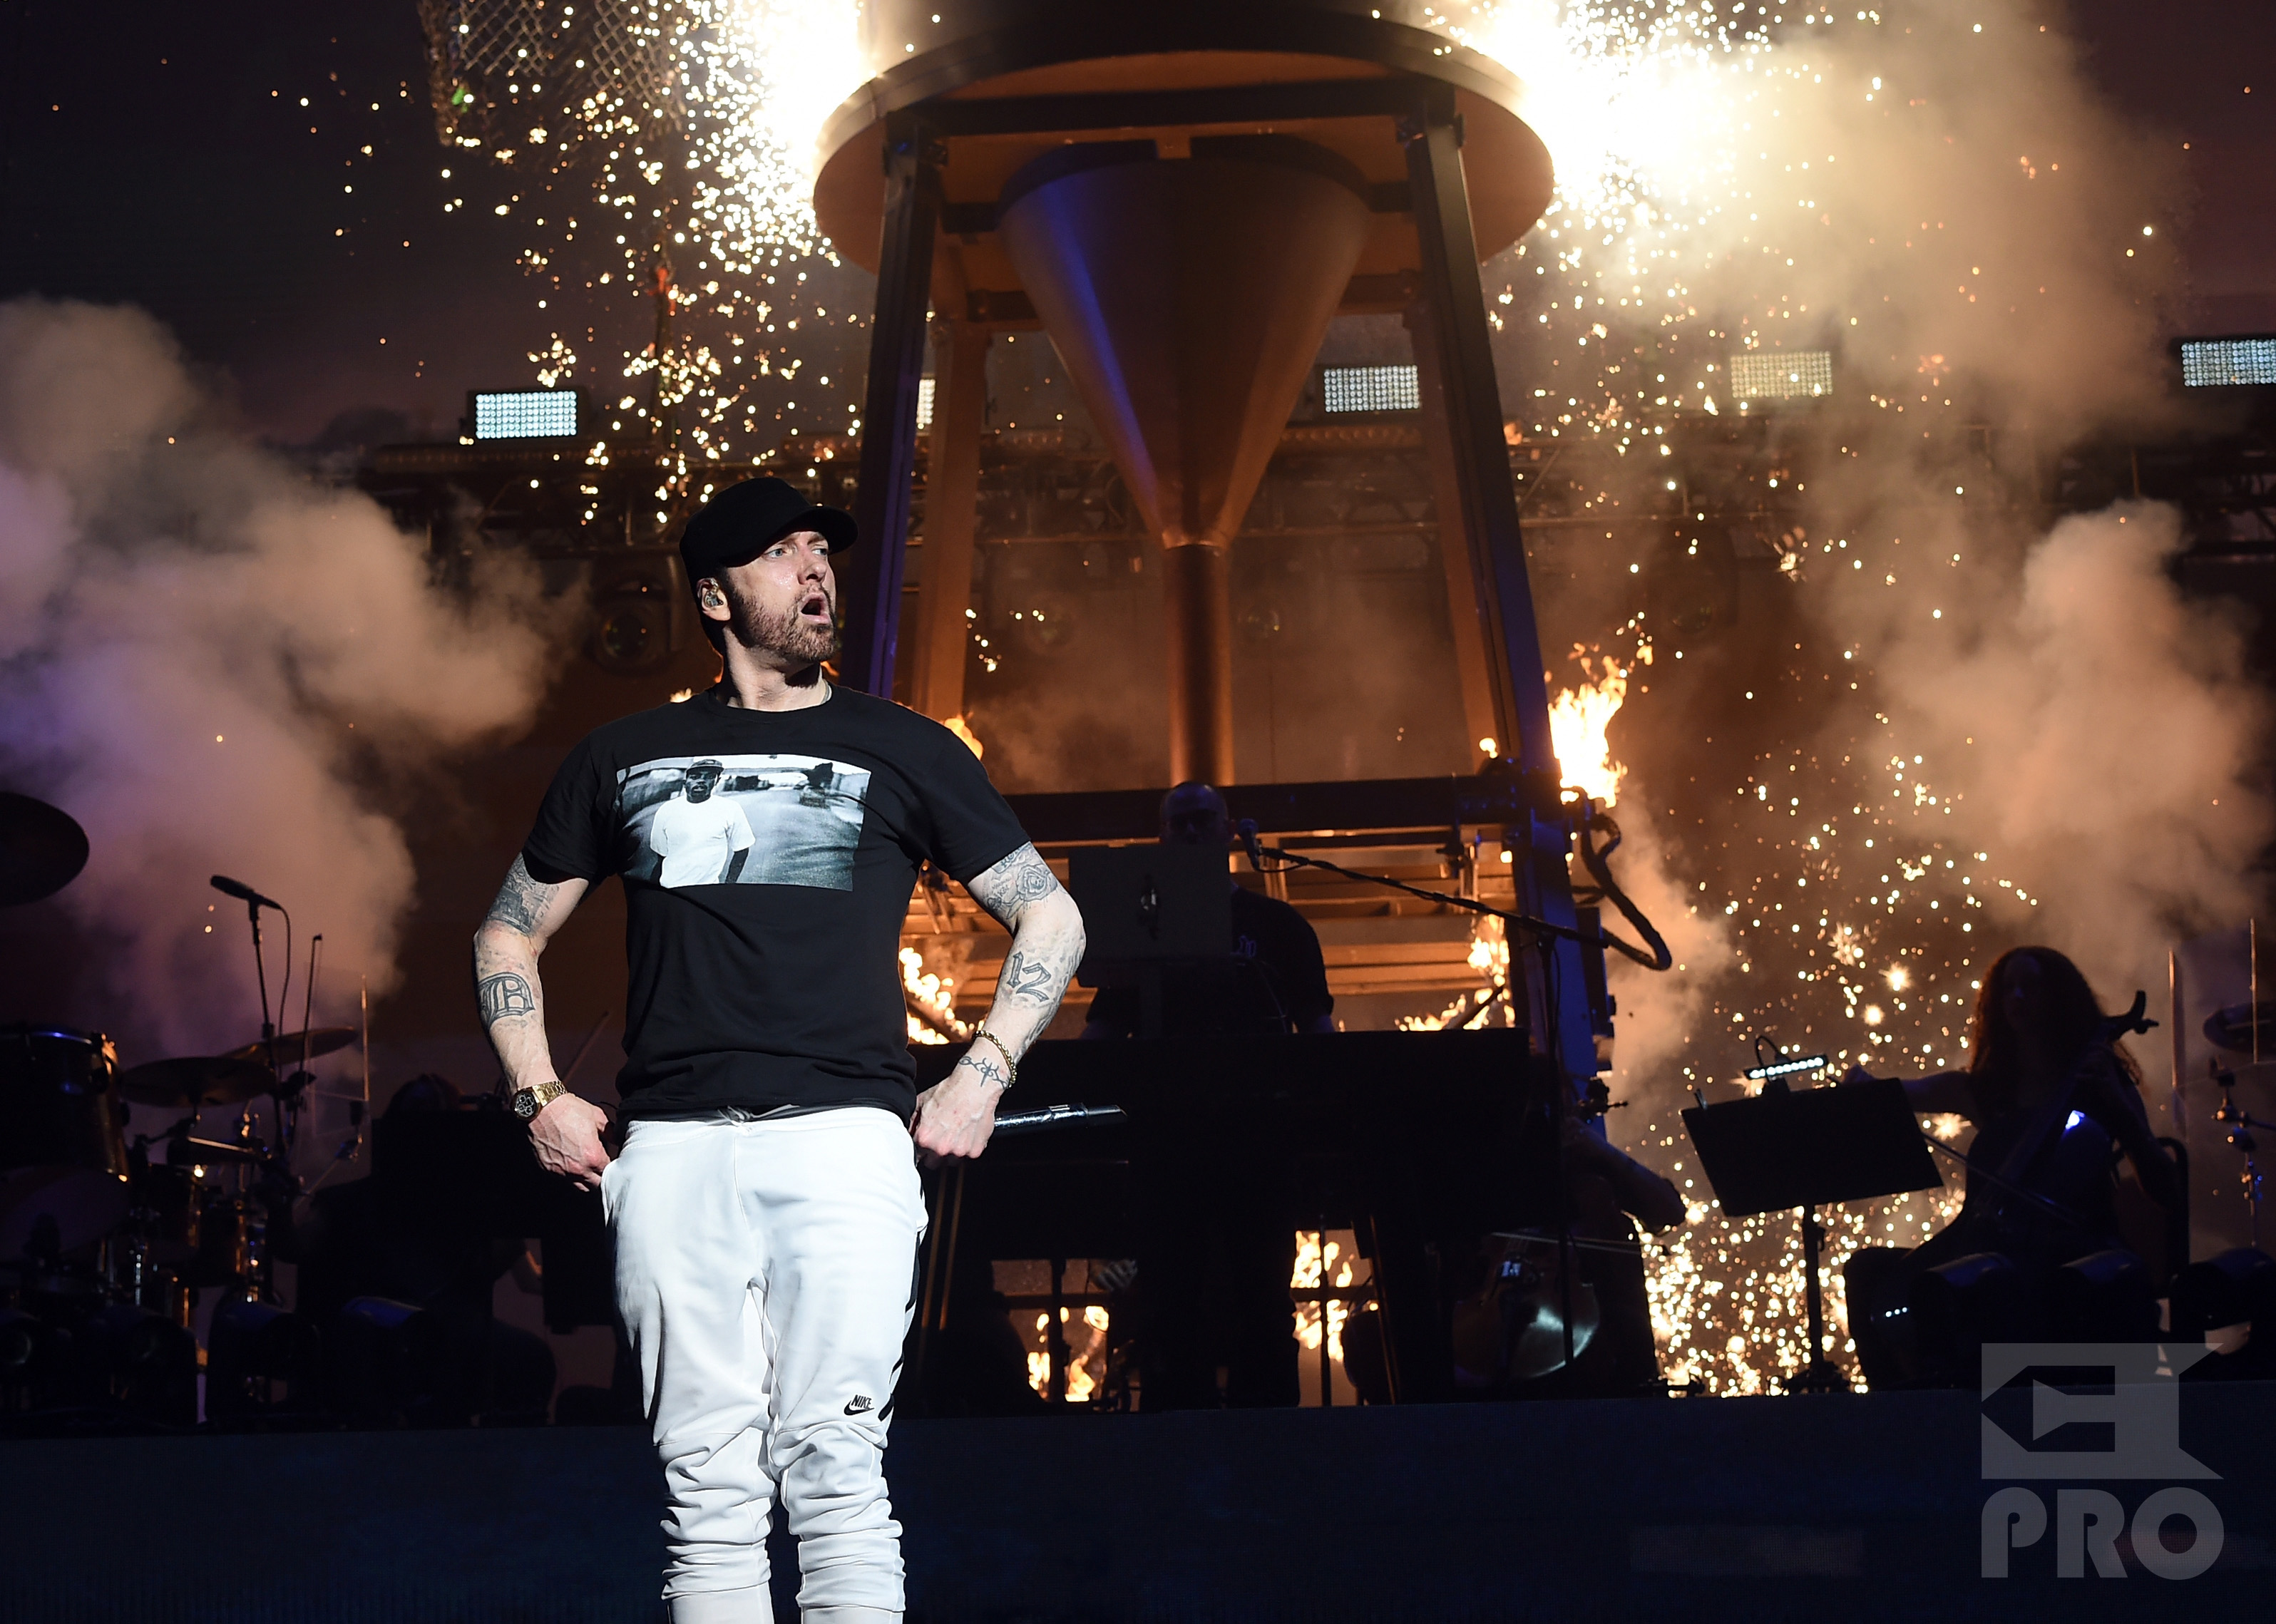 INDIO, CA - APRIL 15: Eminem performs onstage during the 2018 Coachella Valley Music and Arts Festival Weekend 1 at the Empire Polo Field on April 15, 2018 in Indio, California. (Photo by Christopher Polk/Getty Images for Coachella)